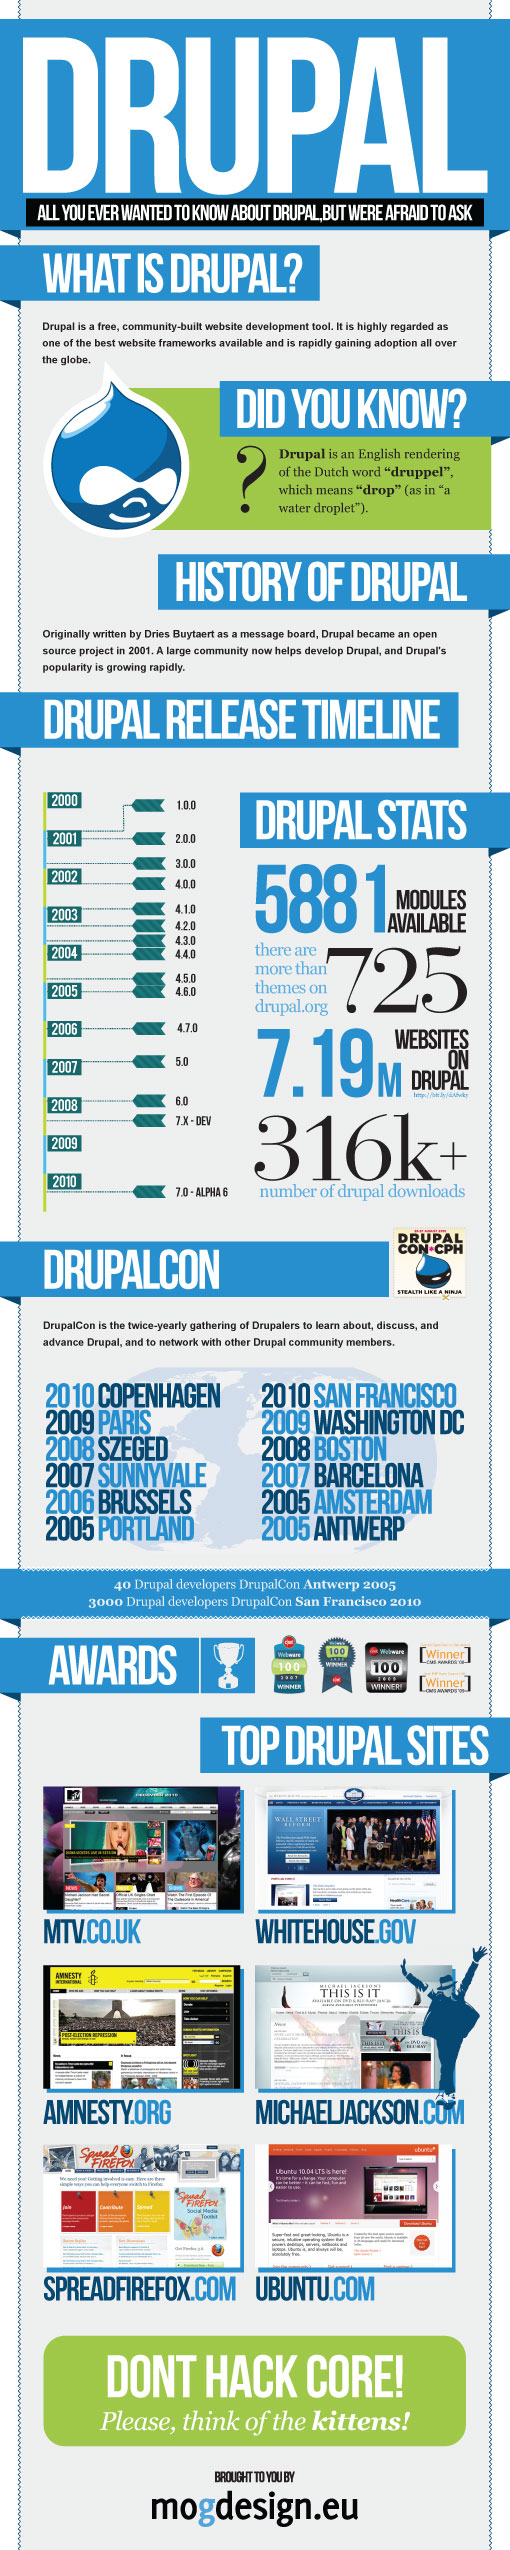 Drupal Infographic